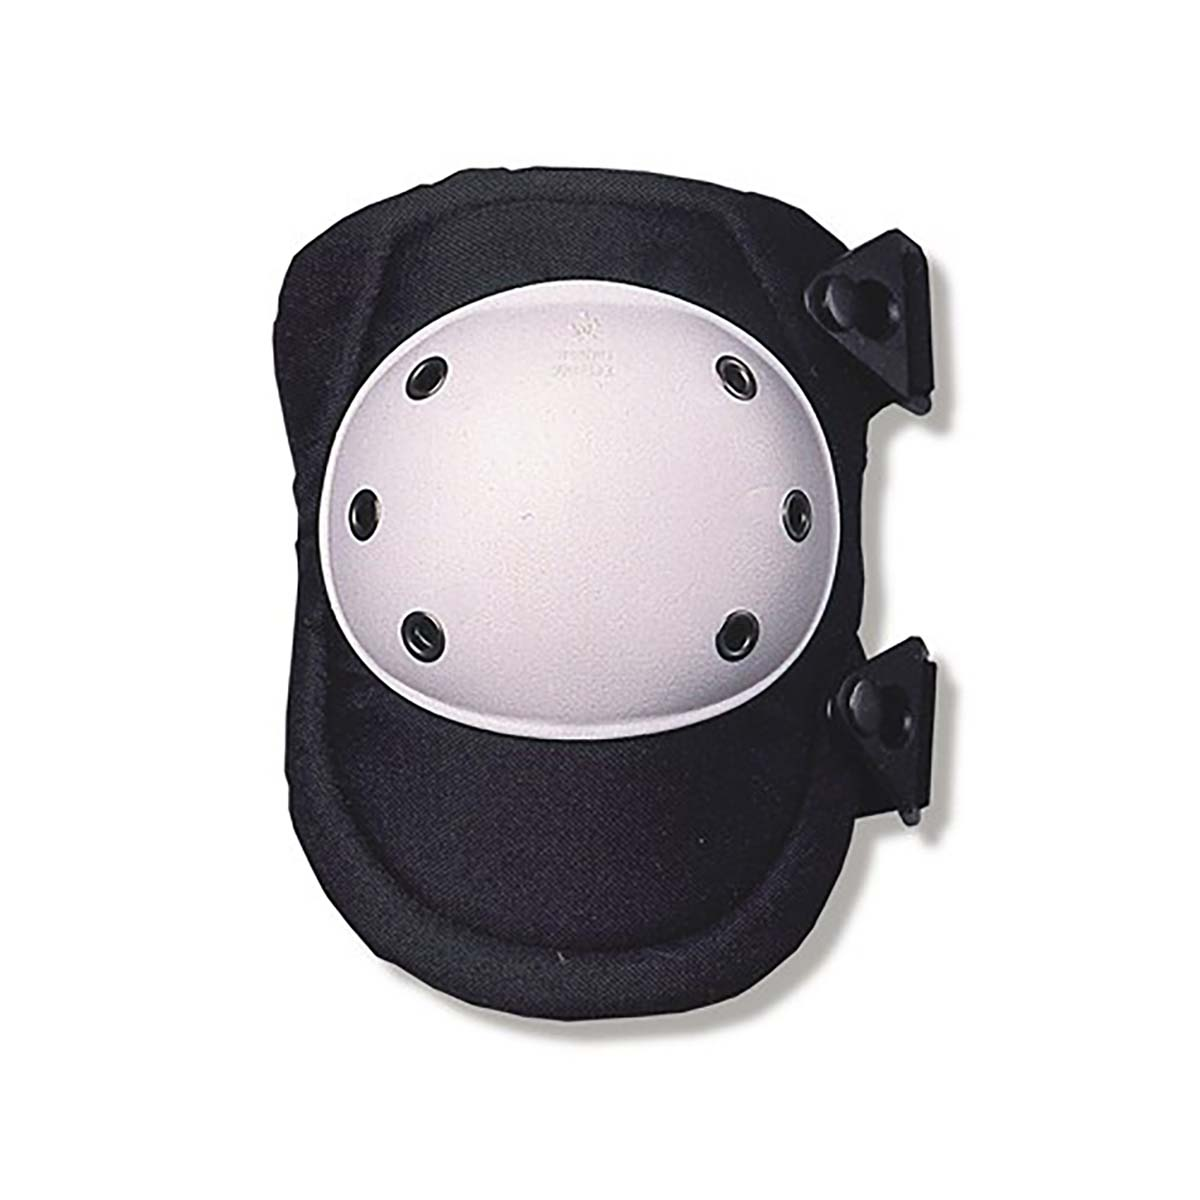 300  White Cap Rounded Hard Cap Knee Pad